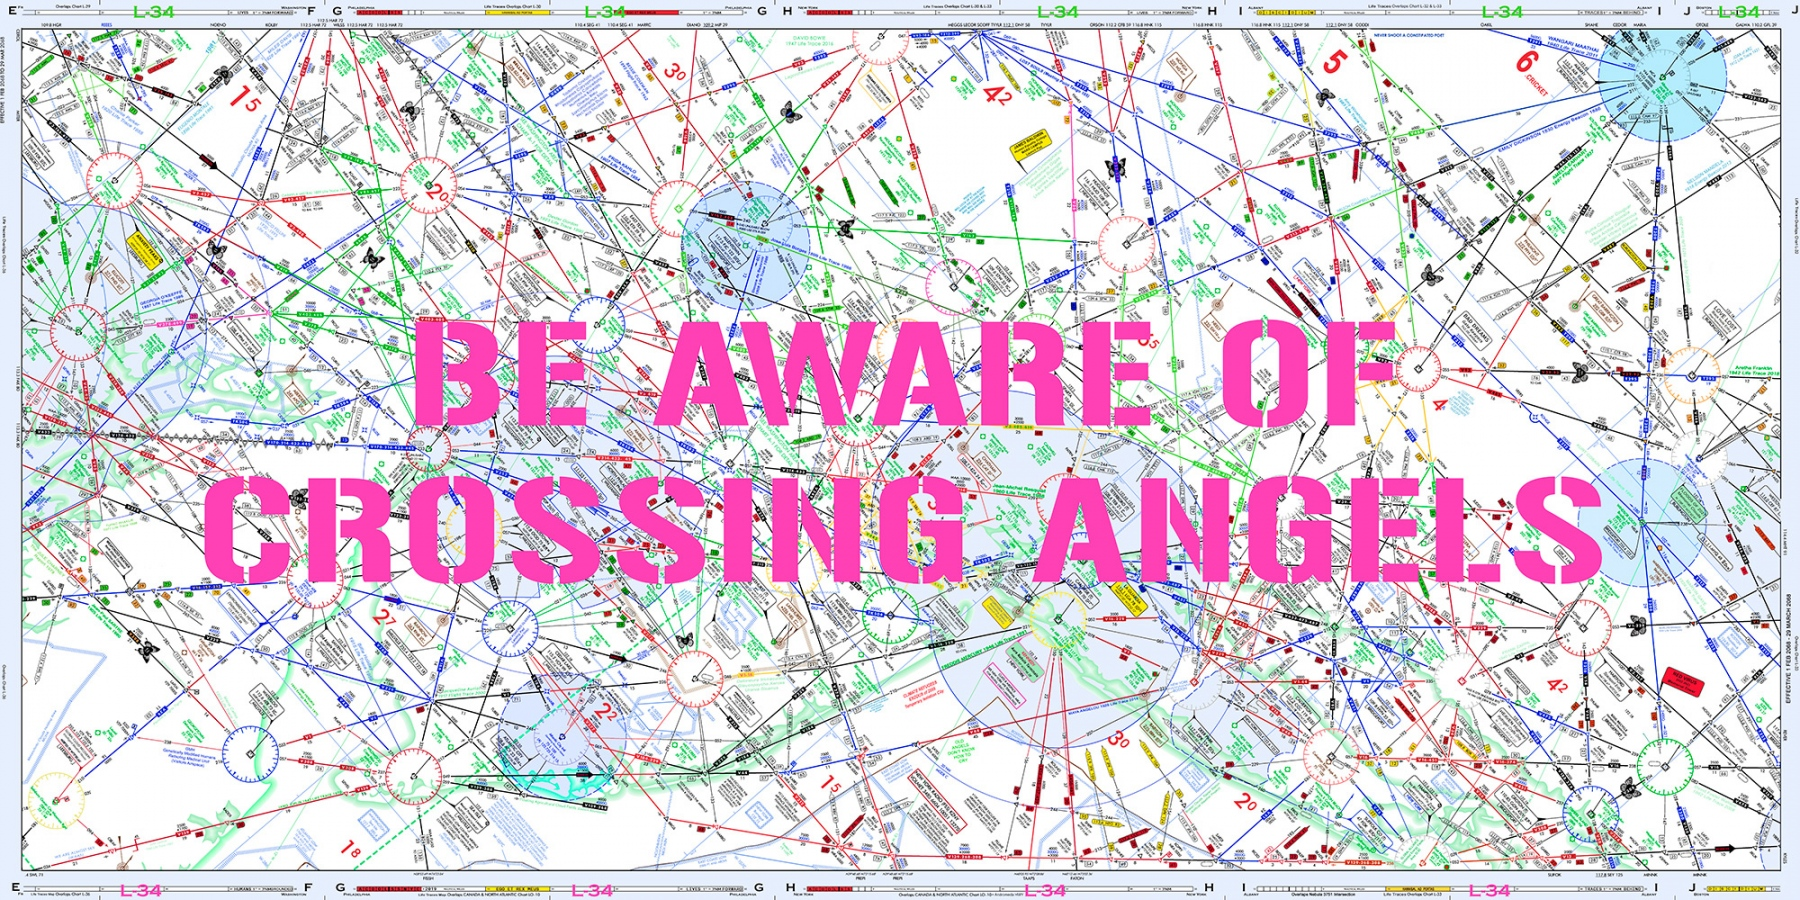 Be Aware of Crossing Angels